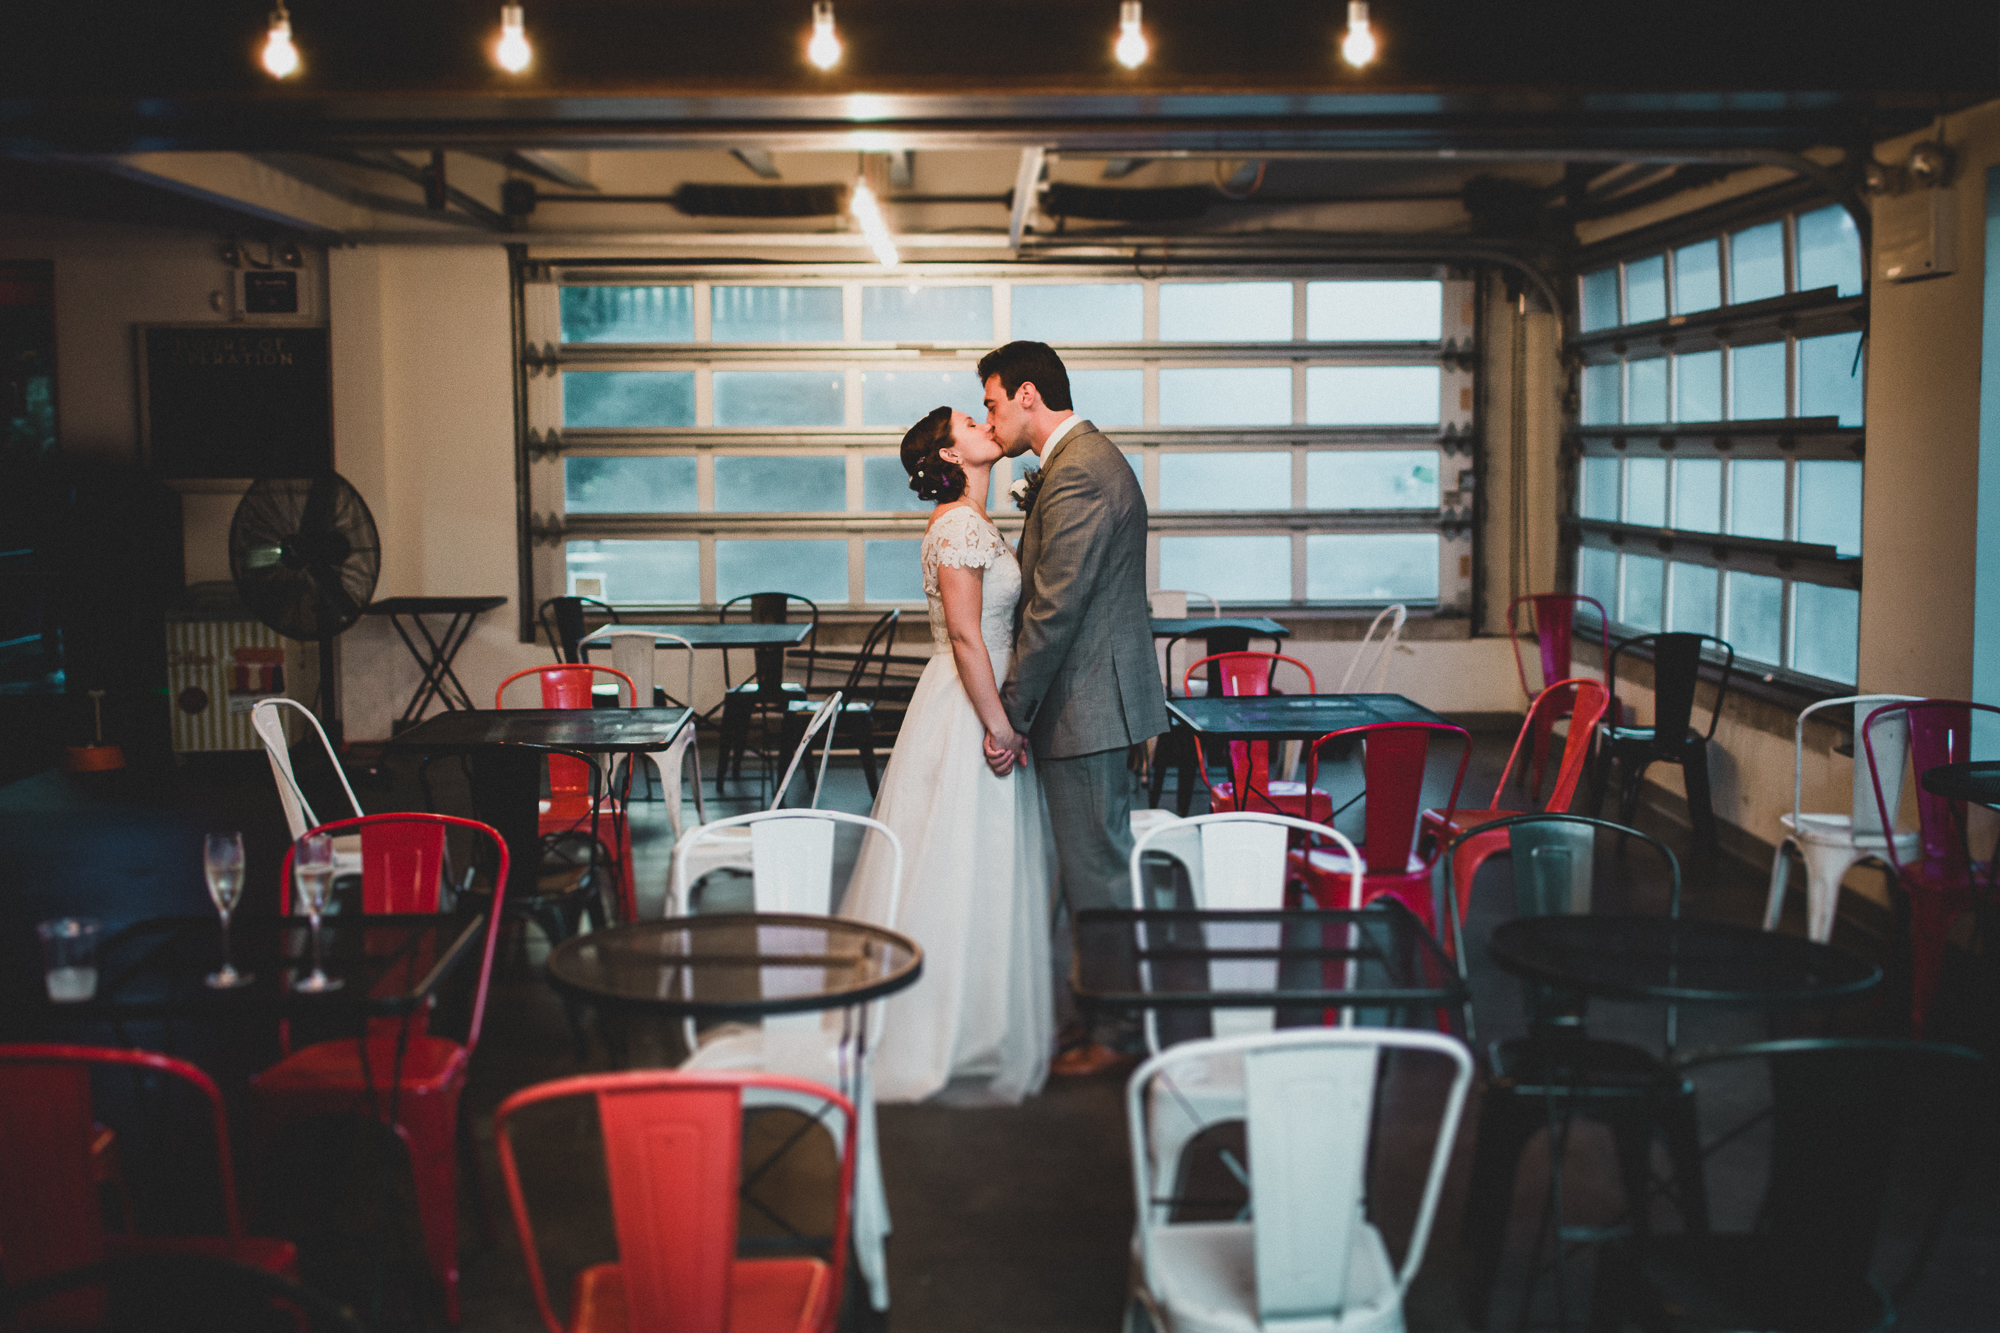 Forninos-Pier-6-Dumbo-Brooklyn-Documentary-Wedding-Photographer-55.jpg